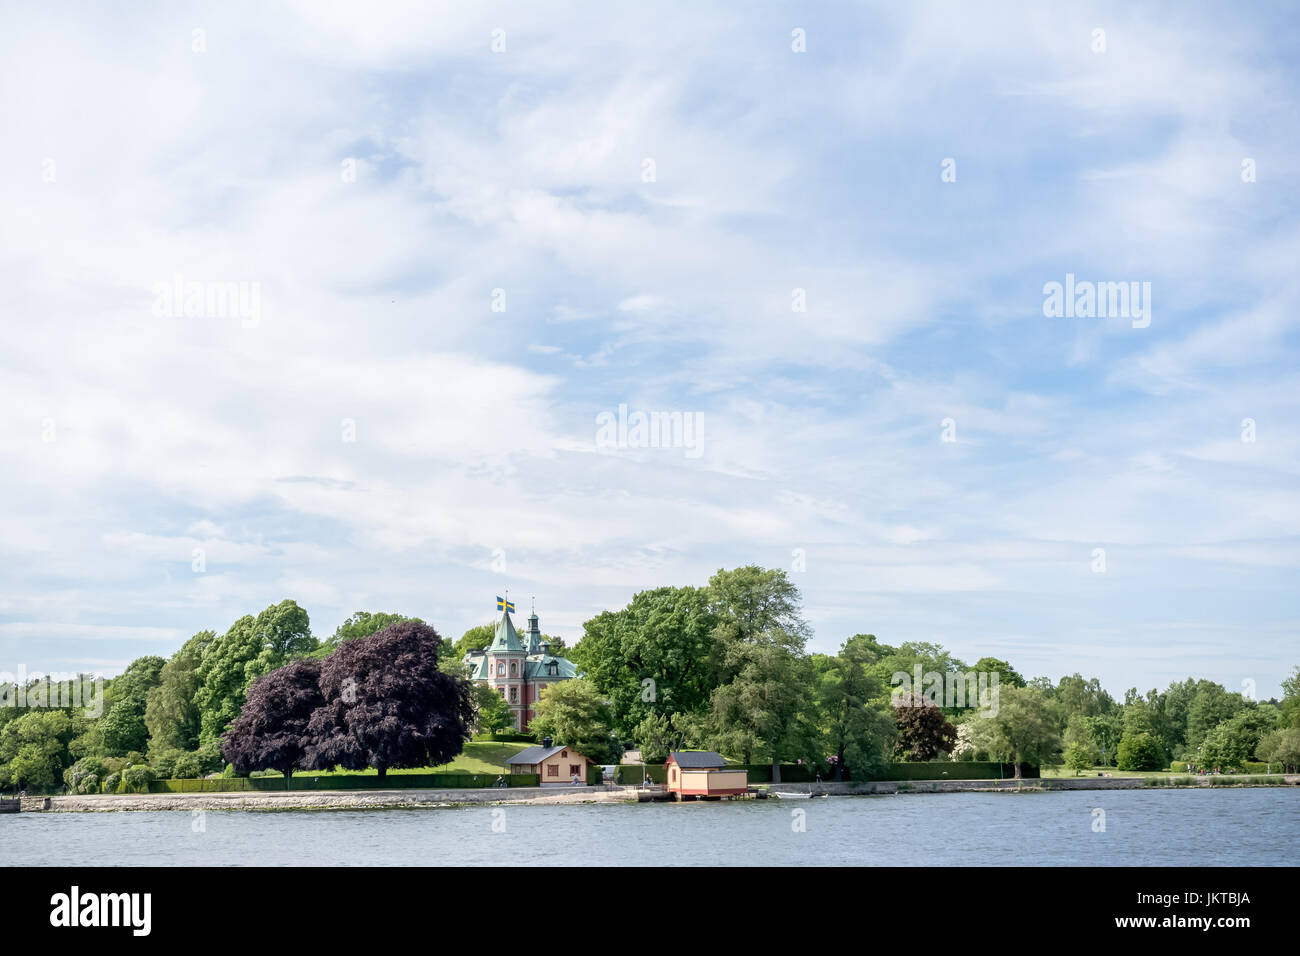 STOCKHOLM, SWEDEN - JUNE 6, 2016: Coastal view of an old small castle with Swedish flags on an island of Stockholm - Stock Image